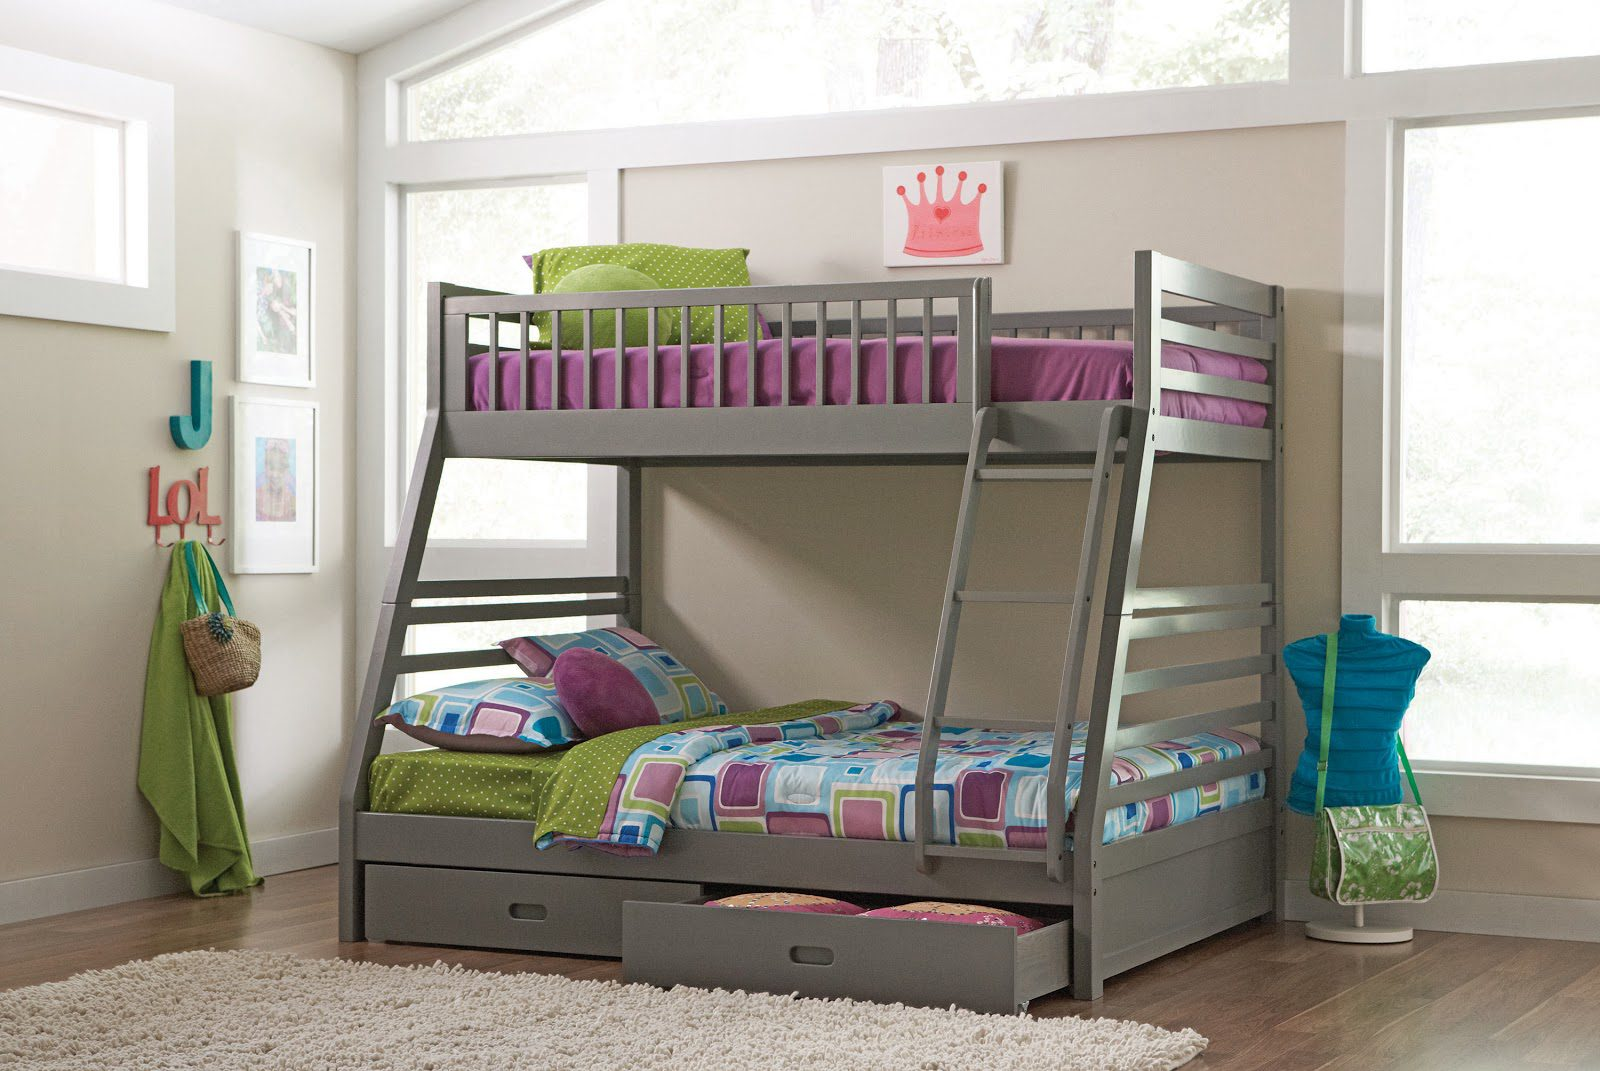 Coaster preteen room with bunk bed